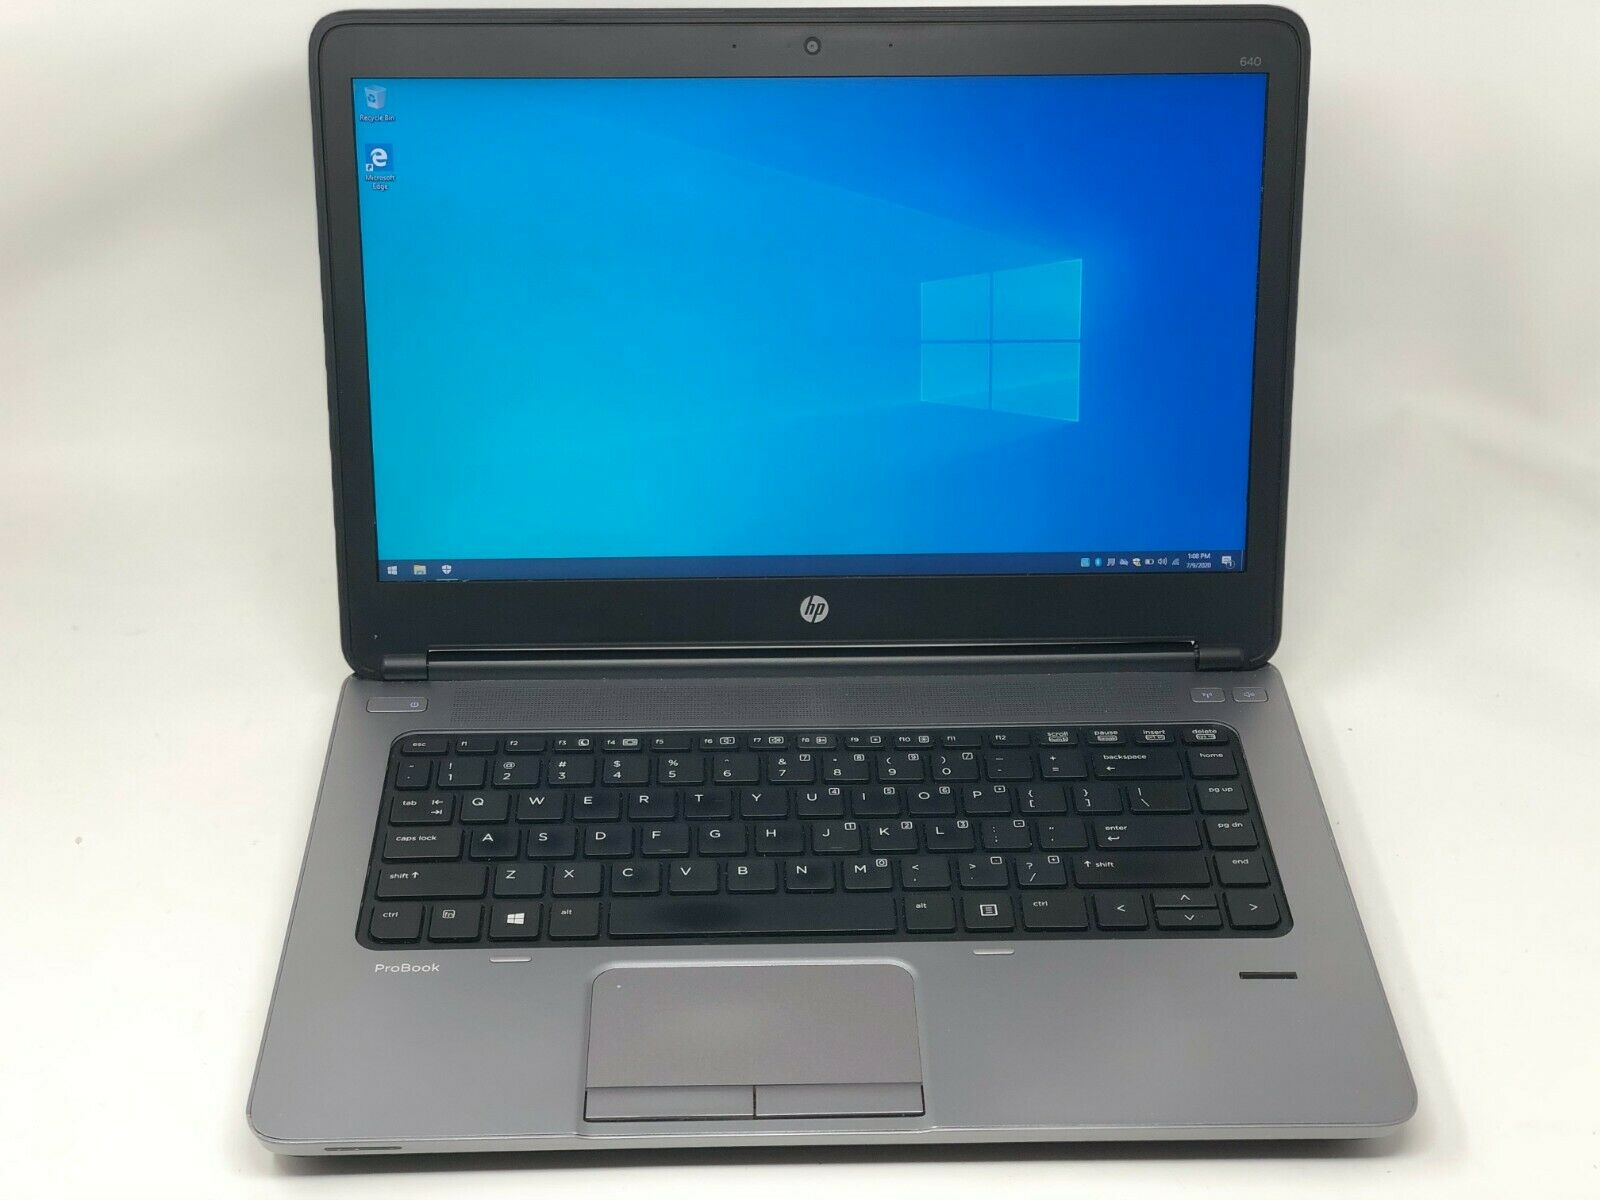 "Laptop Windows - HP Probook 640 14"" i5-4200M 2.5GHz Laptop - Create your own specs RAM HDD SSD"